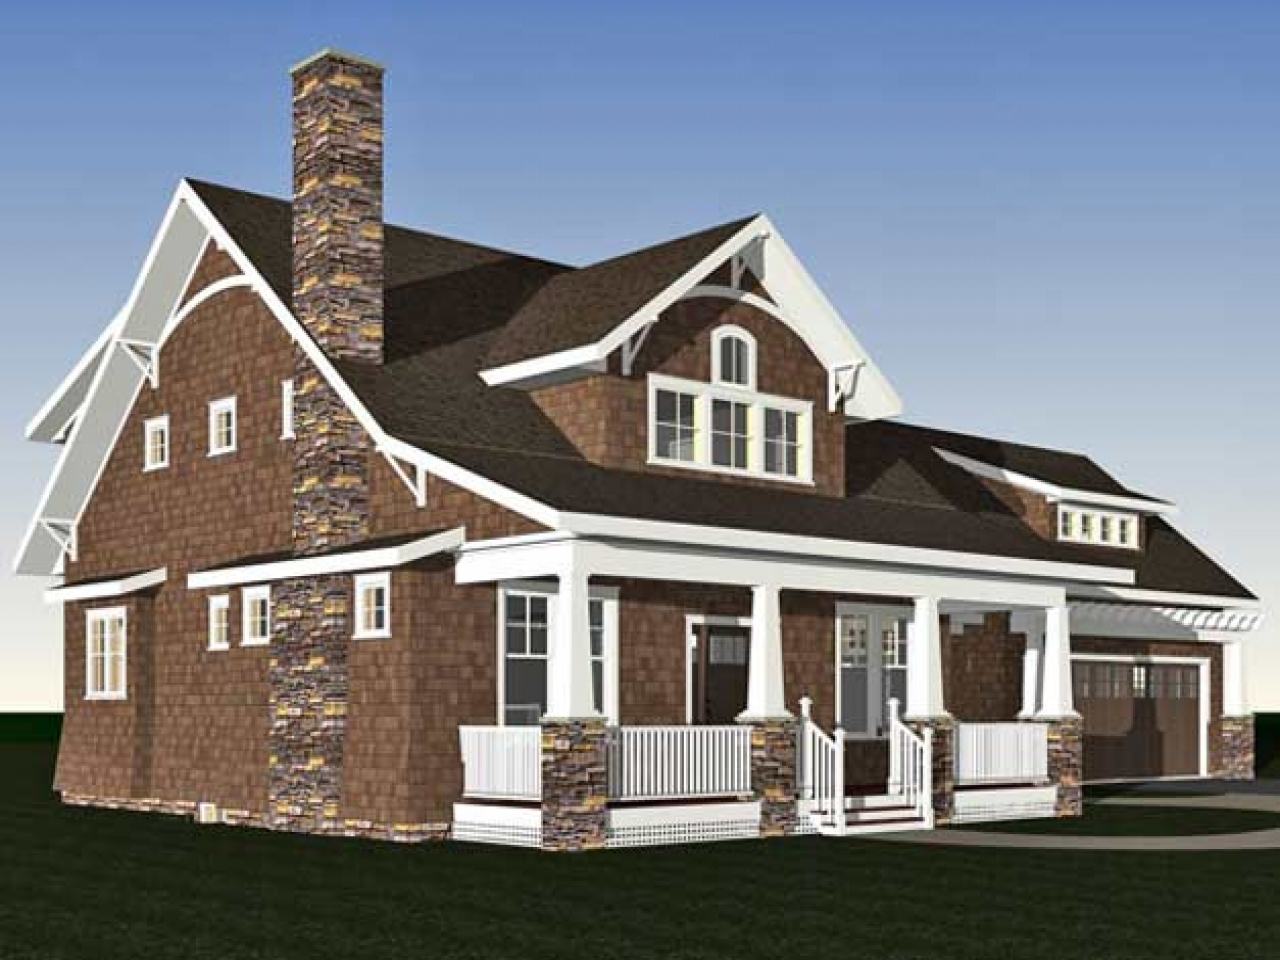 Arts and crafts bungalow home plans arts and crafts for Arts and crafts style home plans